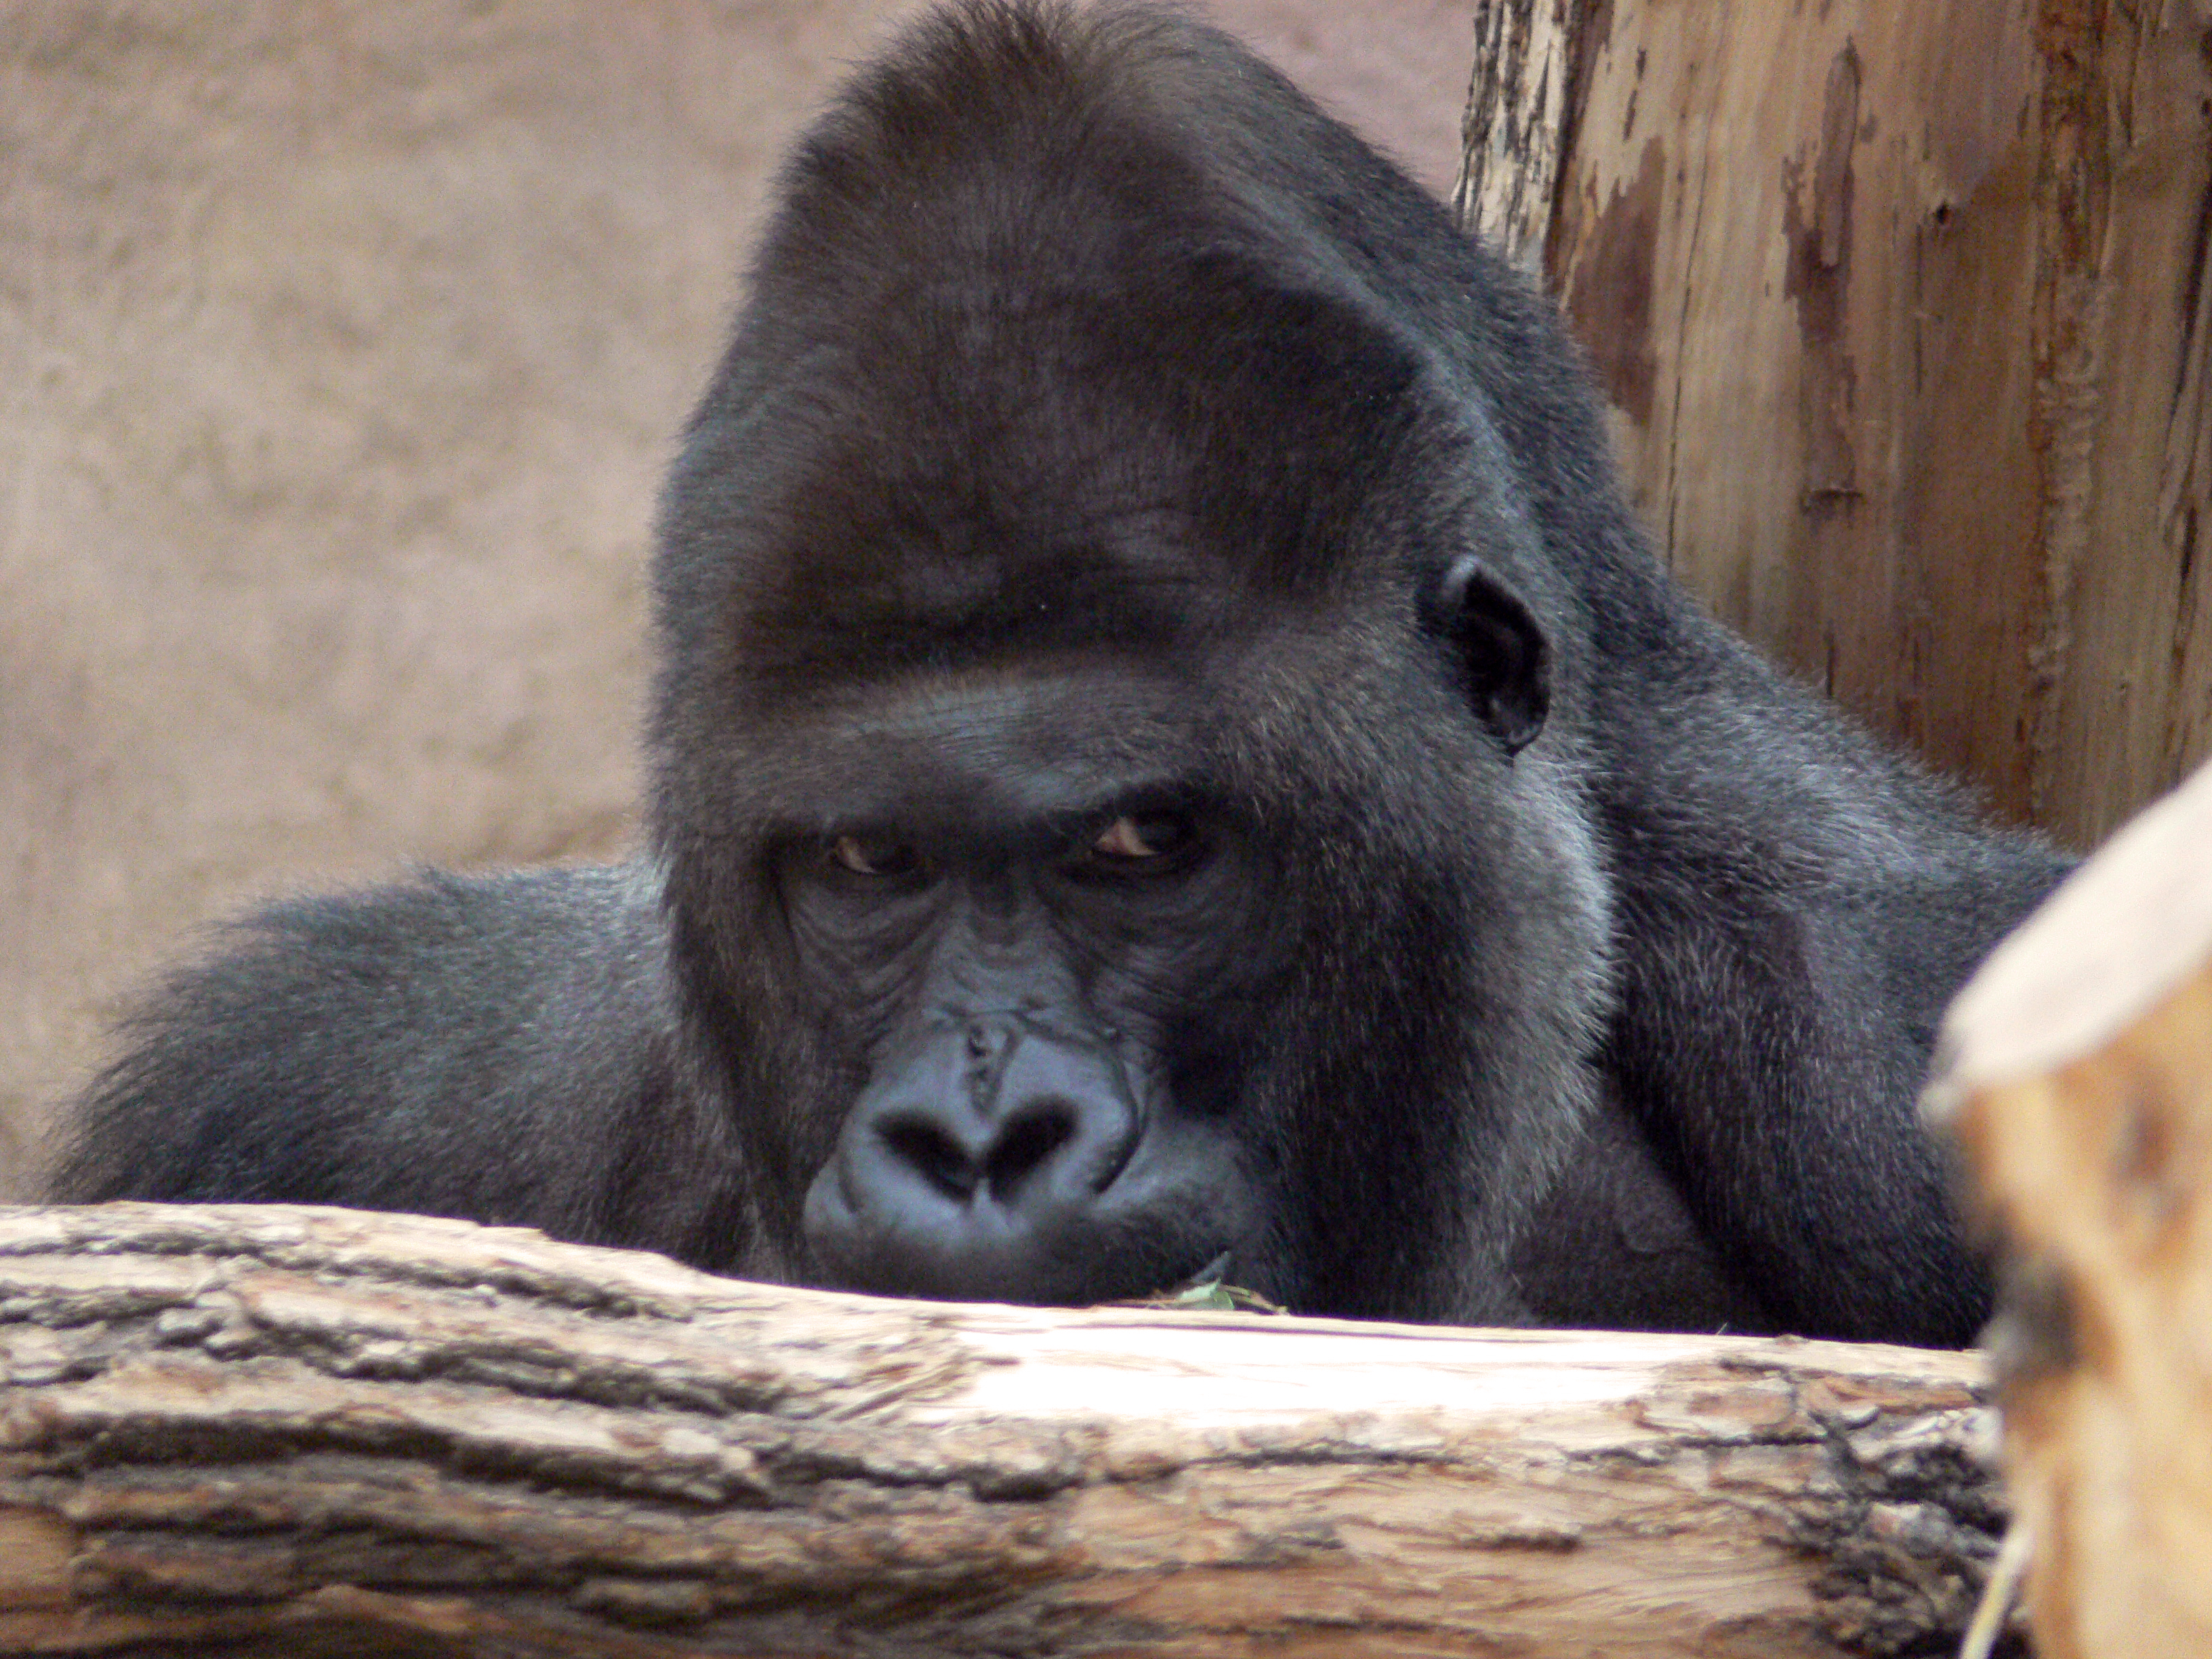 Gorilla photo